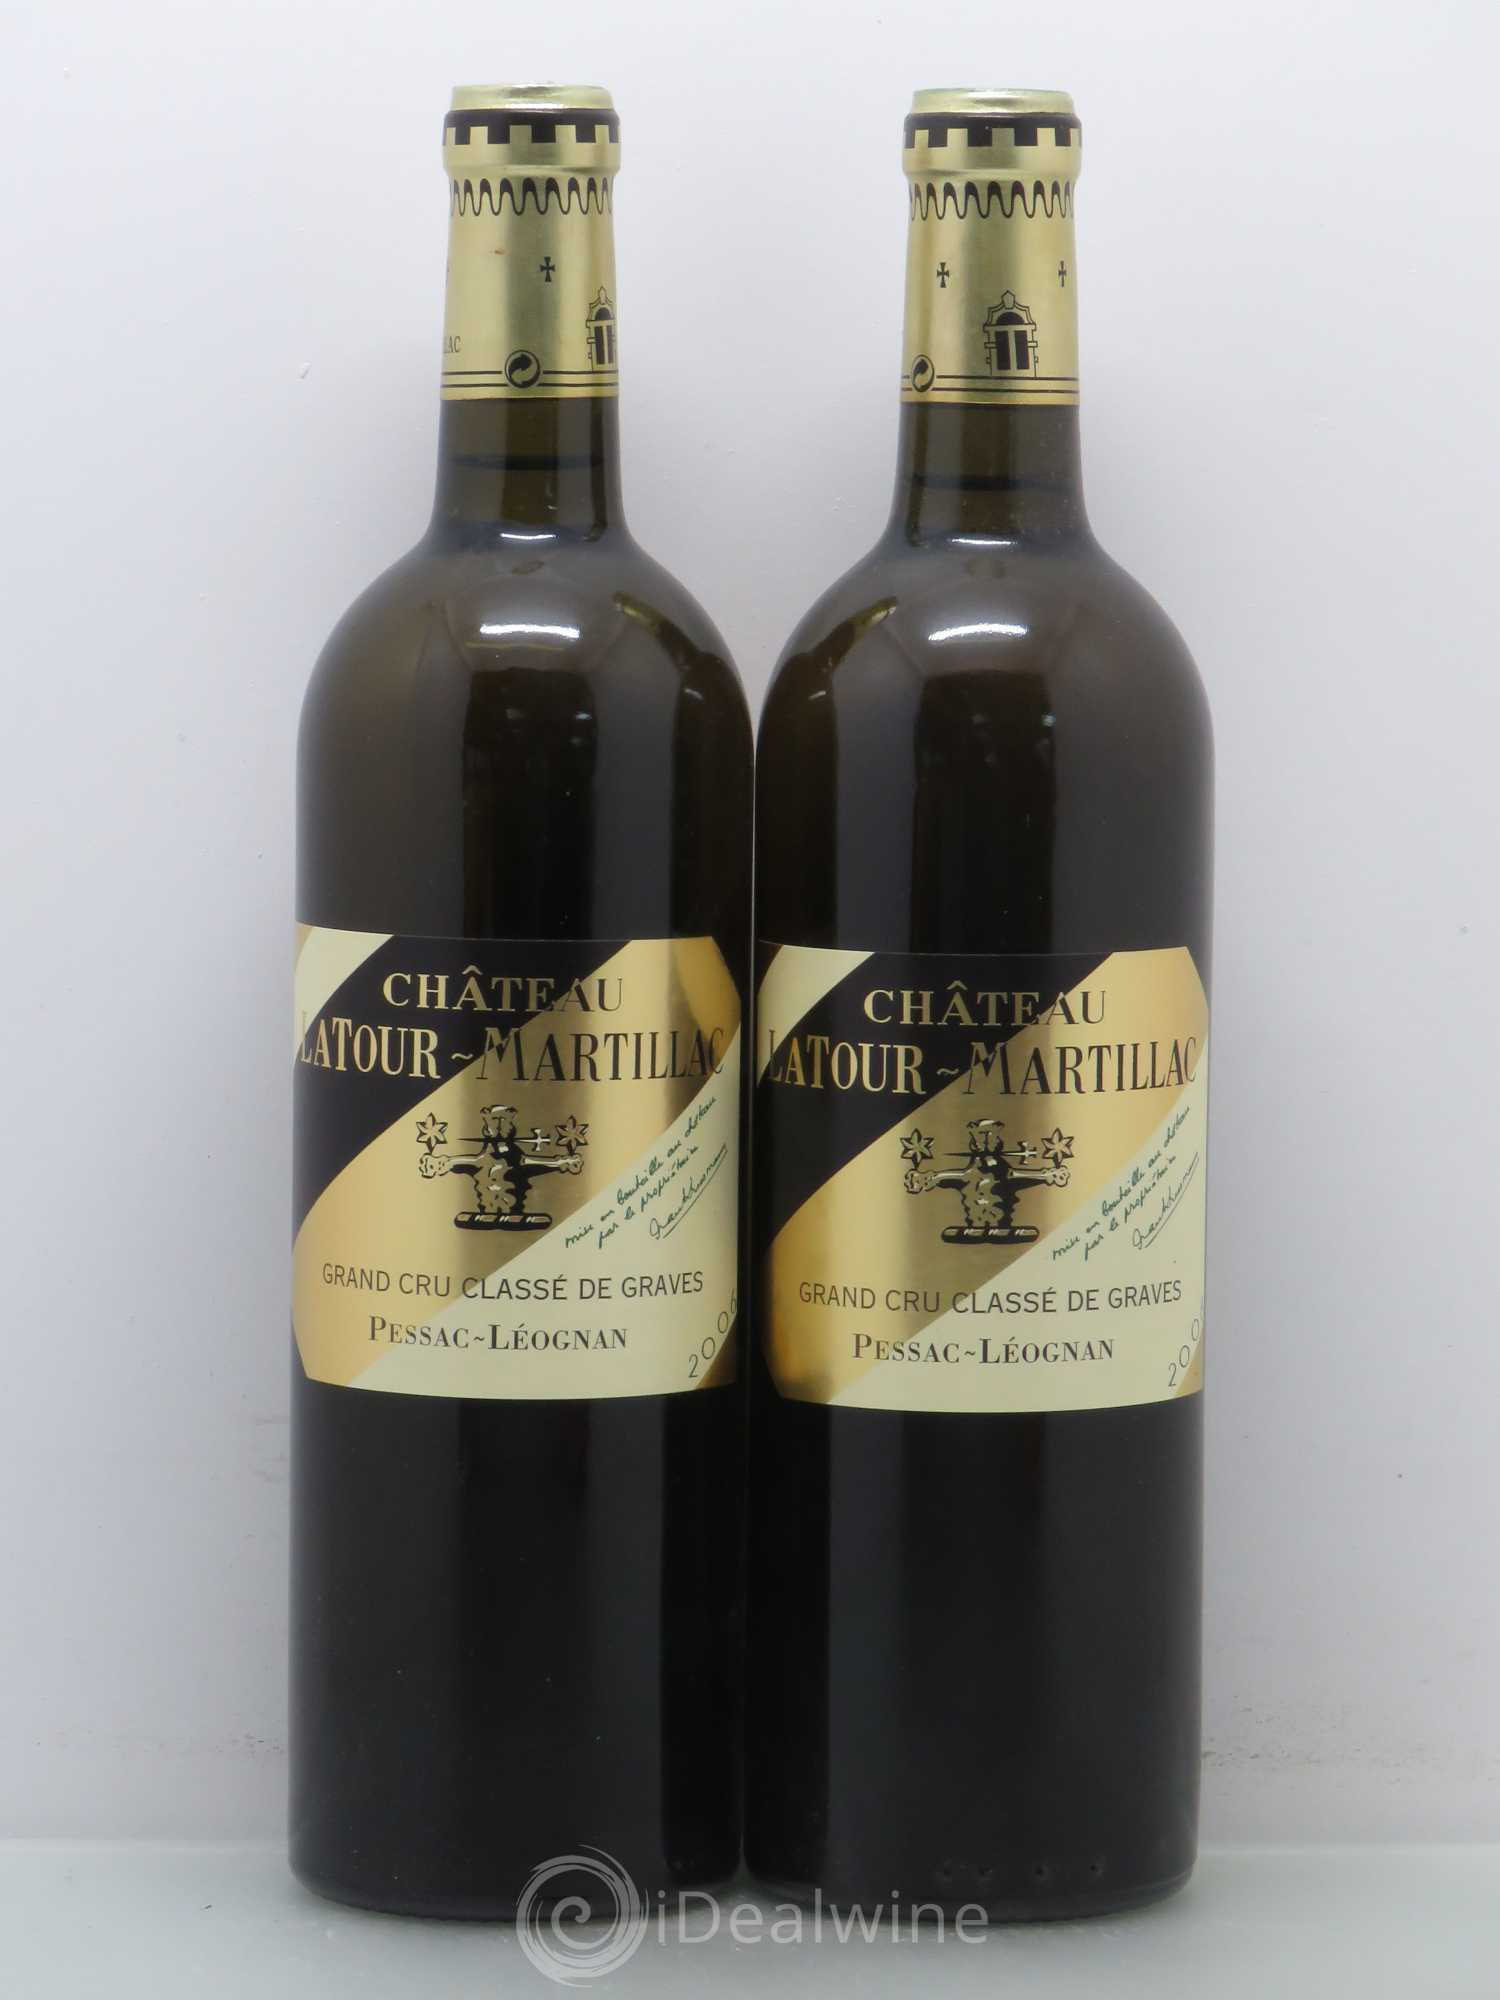 acheter ch teau latour martillac cru class de graves 2006 lot 13548. Black Bedroom Furniture Sets. Home Design Ideas